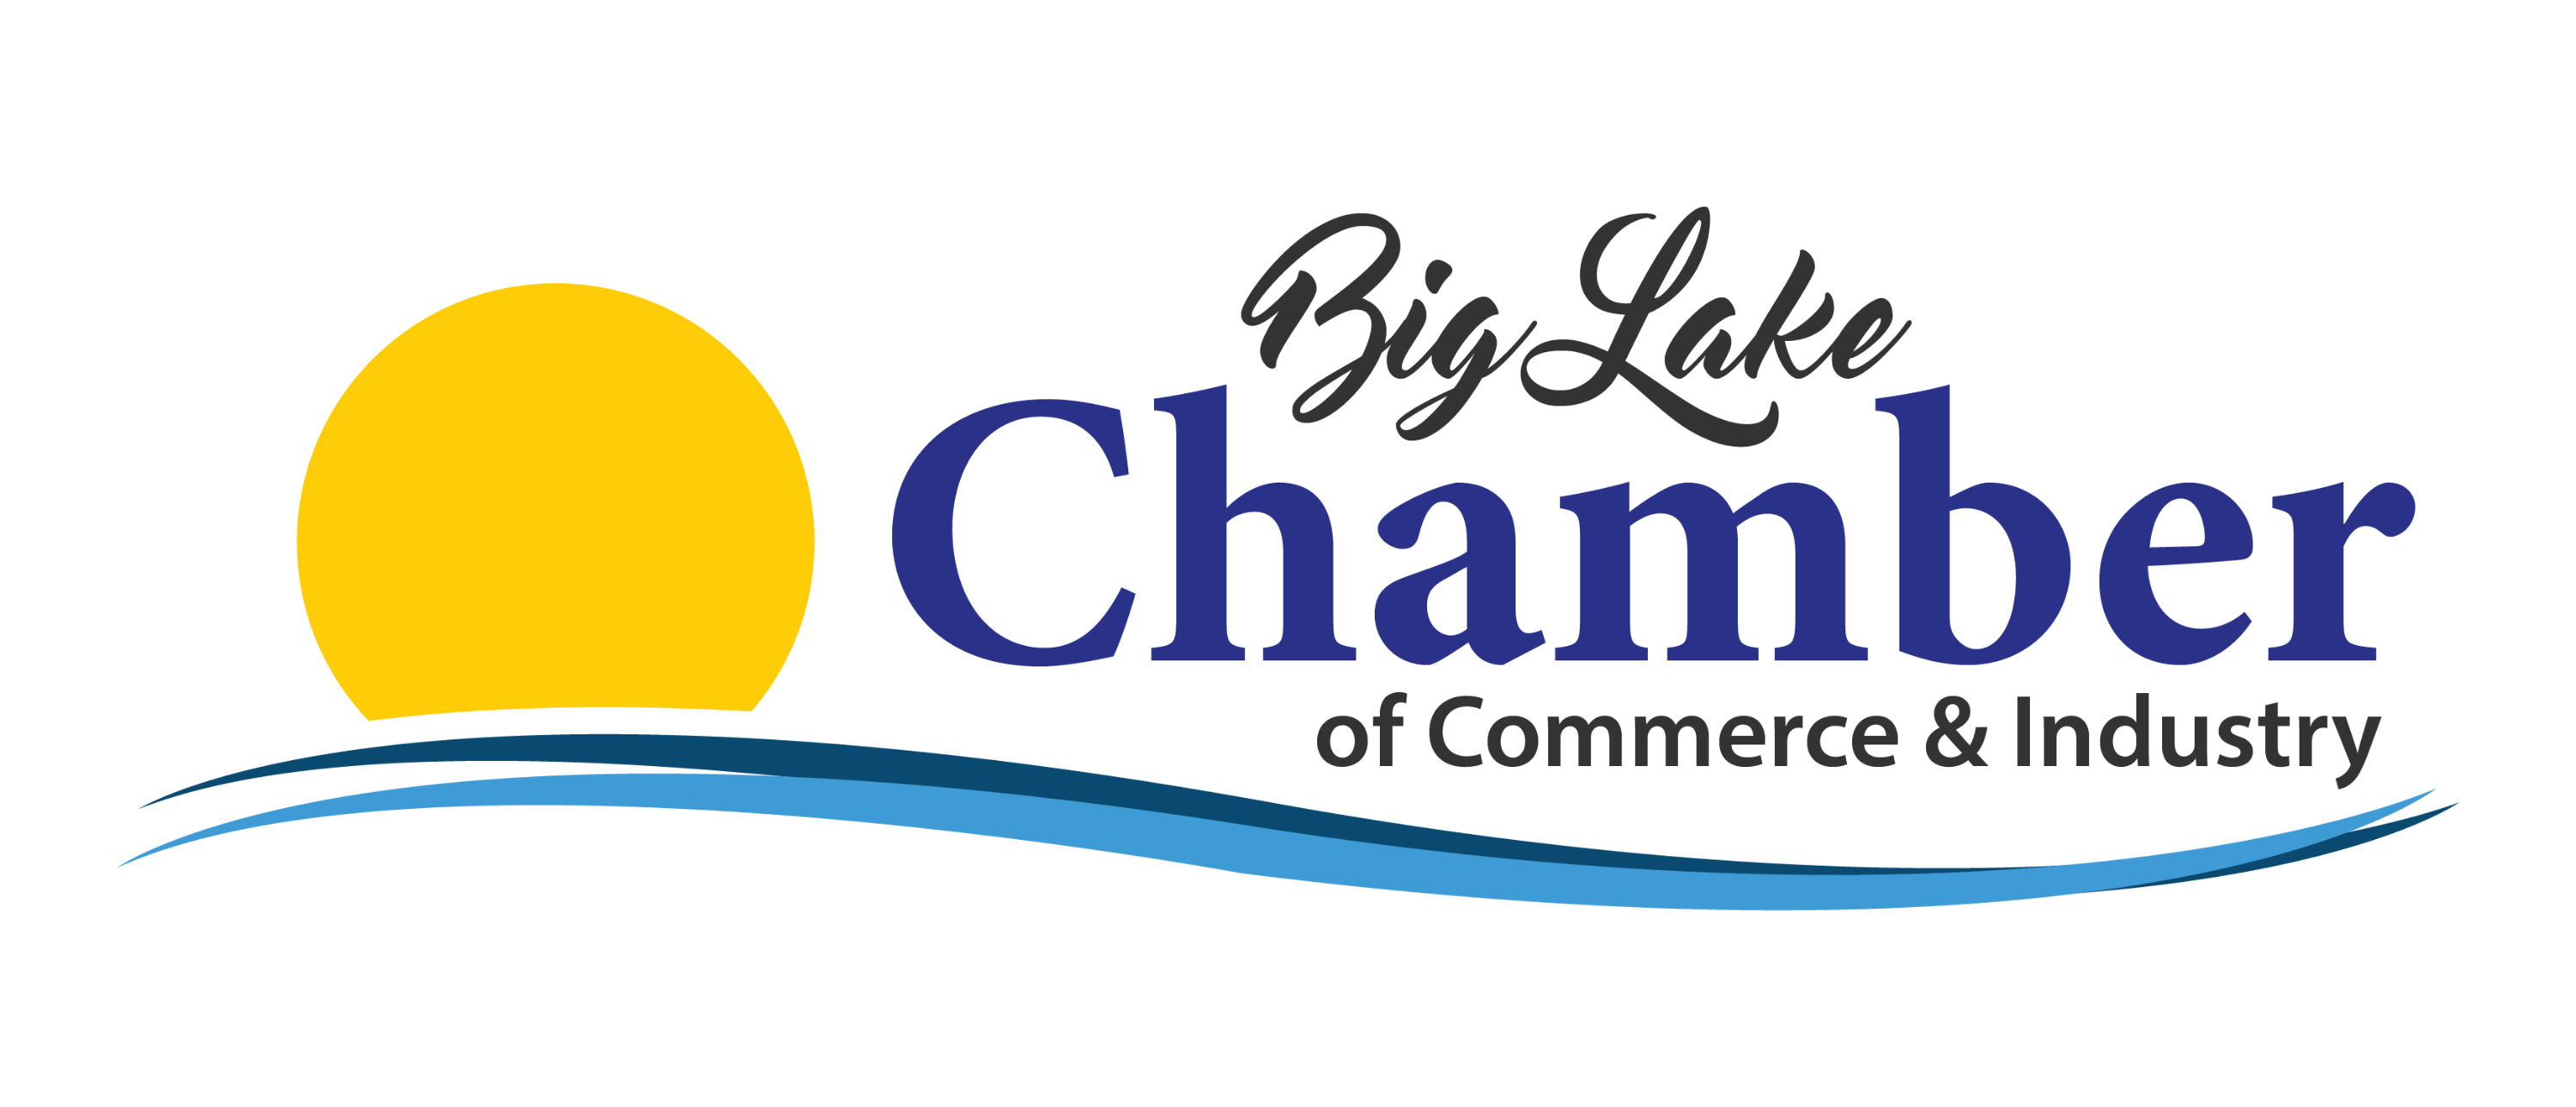 Big Lake Chamber of Commerce & Industry